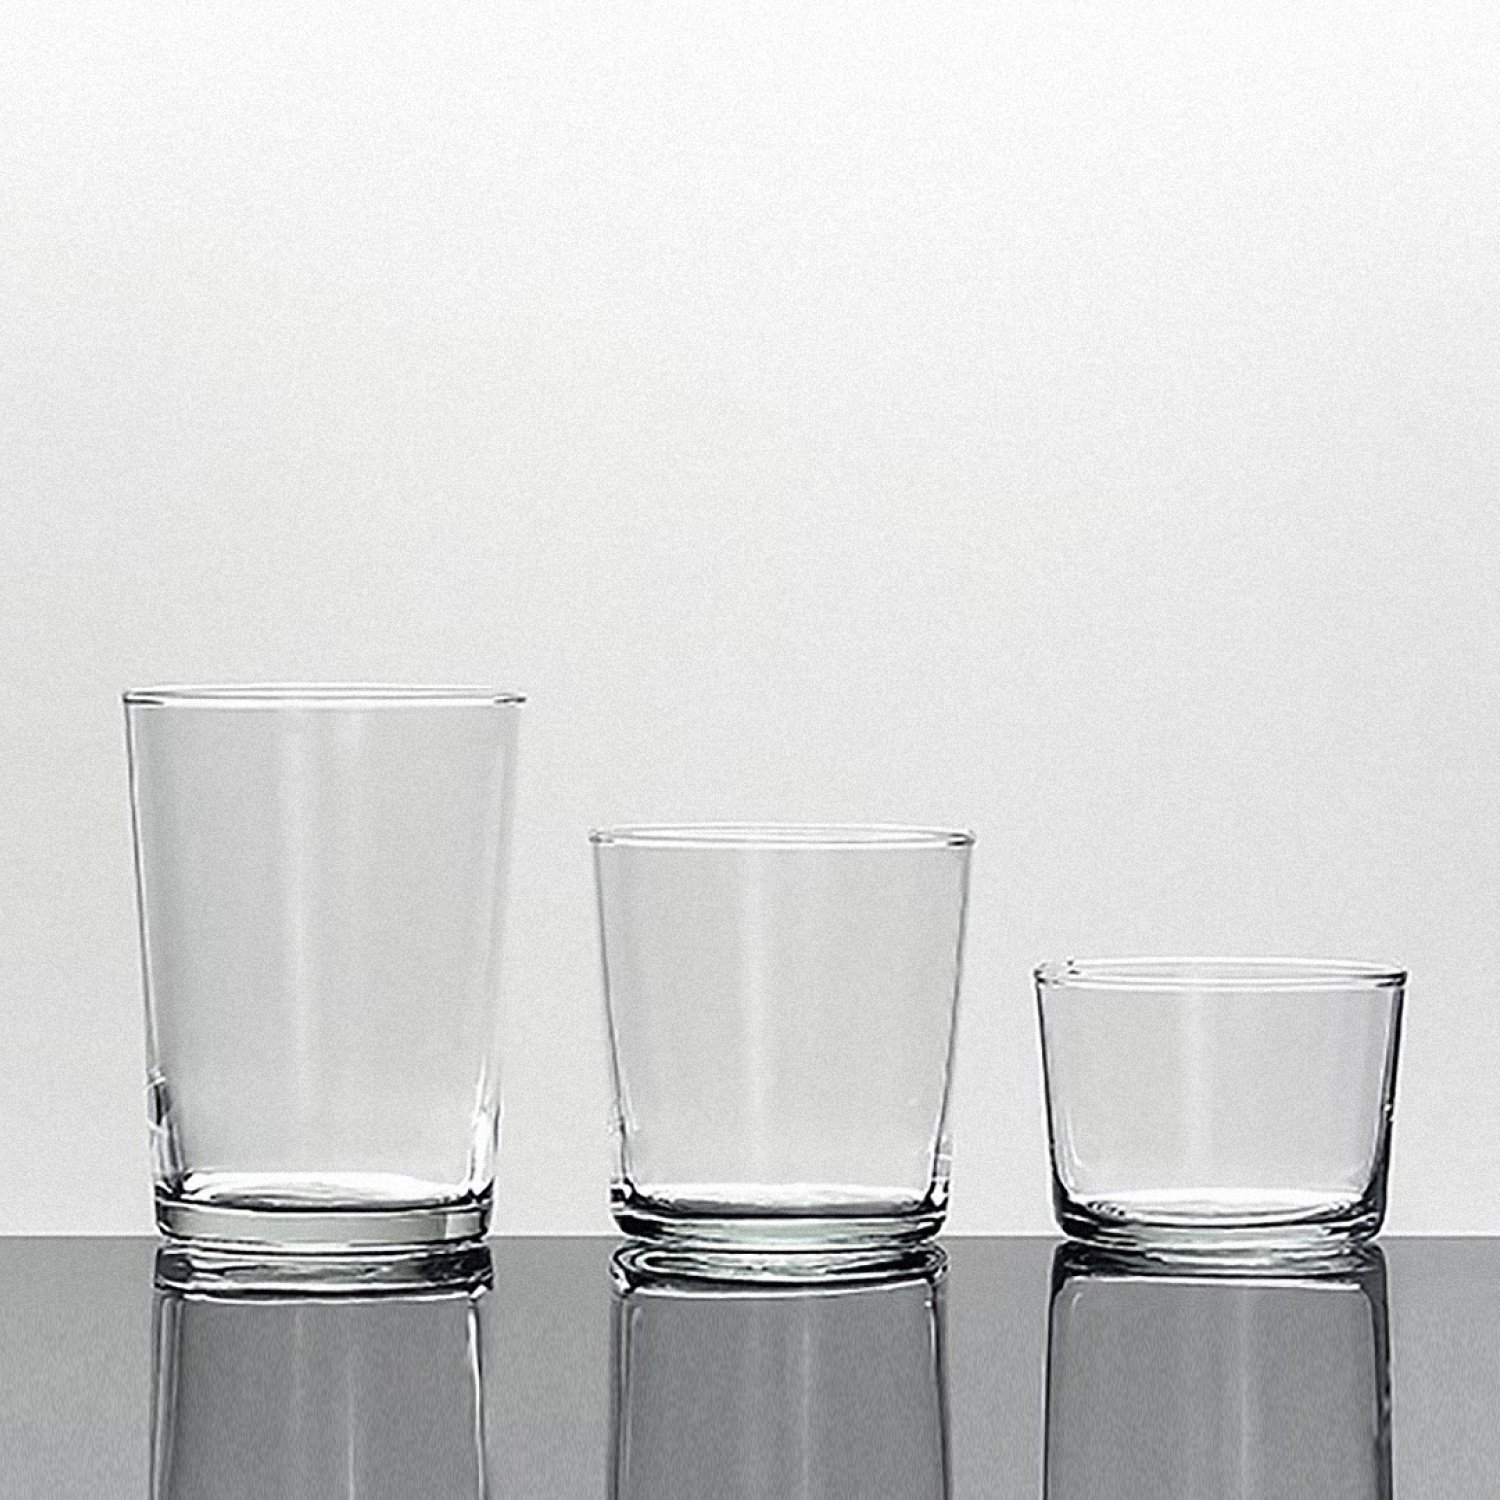 Small Spanish wine tumblers are clear glass and perfect for desserts or yogurt too.